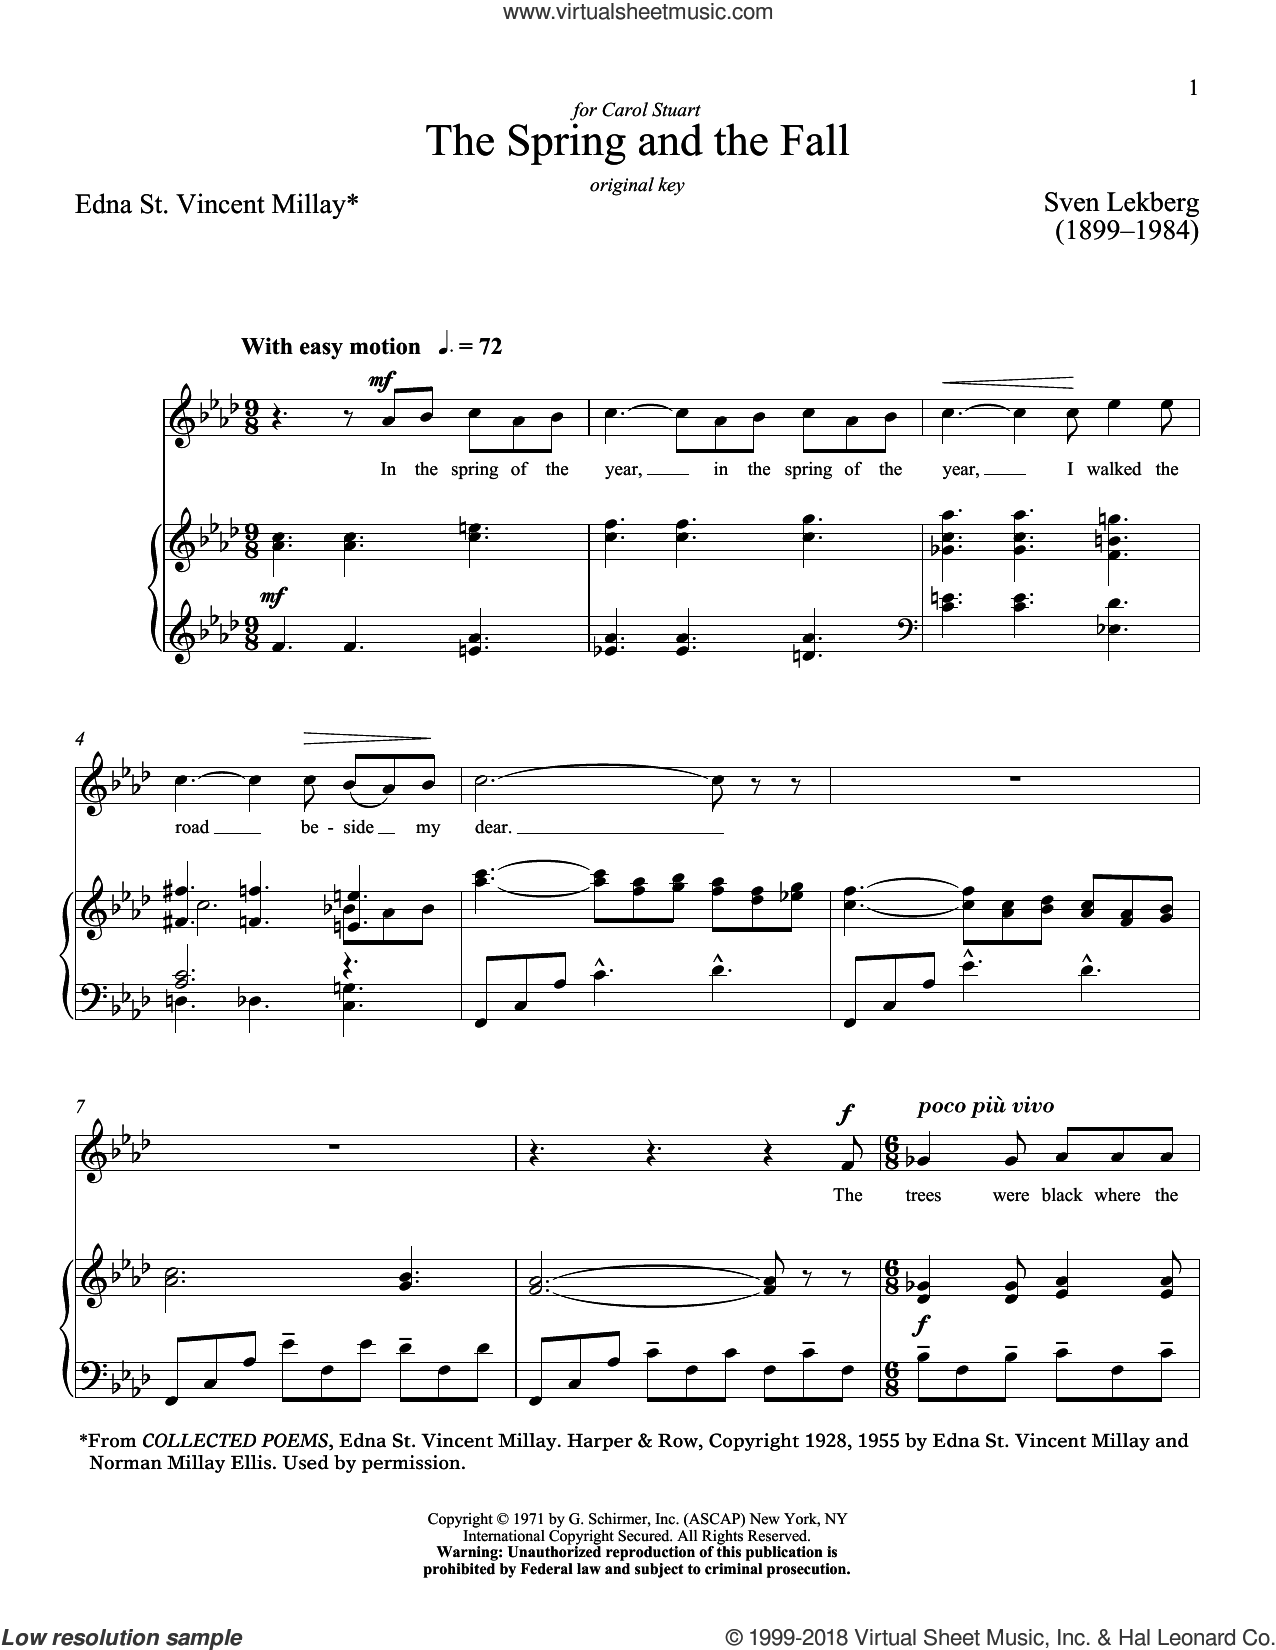 The Spring And The Fall sheet music for voice and piano (High Voice) by Richard Walters, Edna St. Vincent Millay and Sven Lekberg, classical score, intermediate skill level